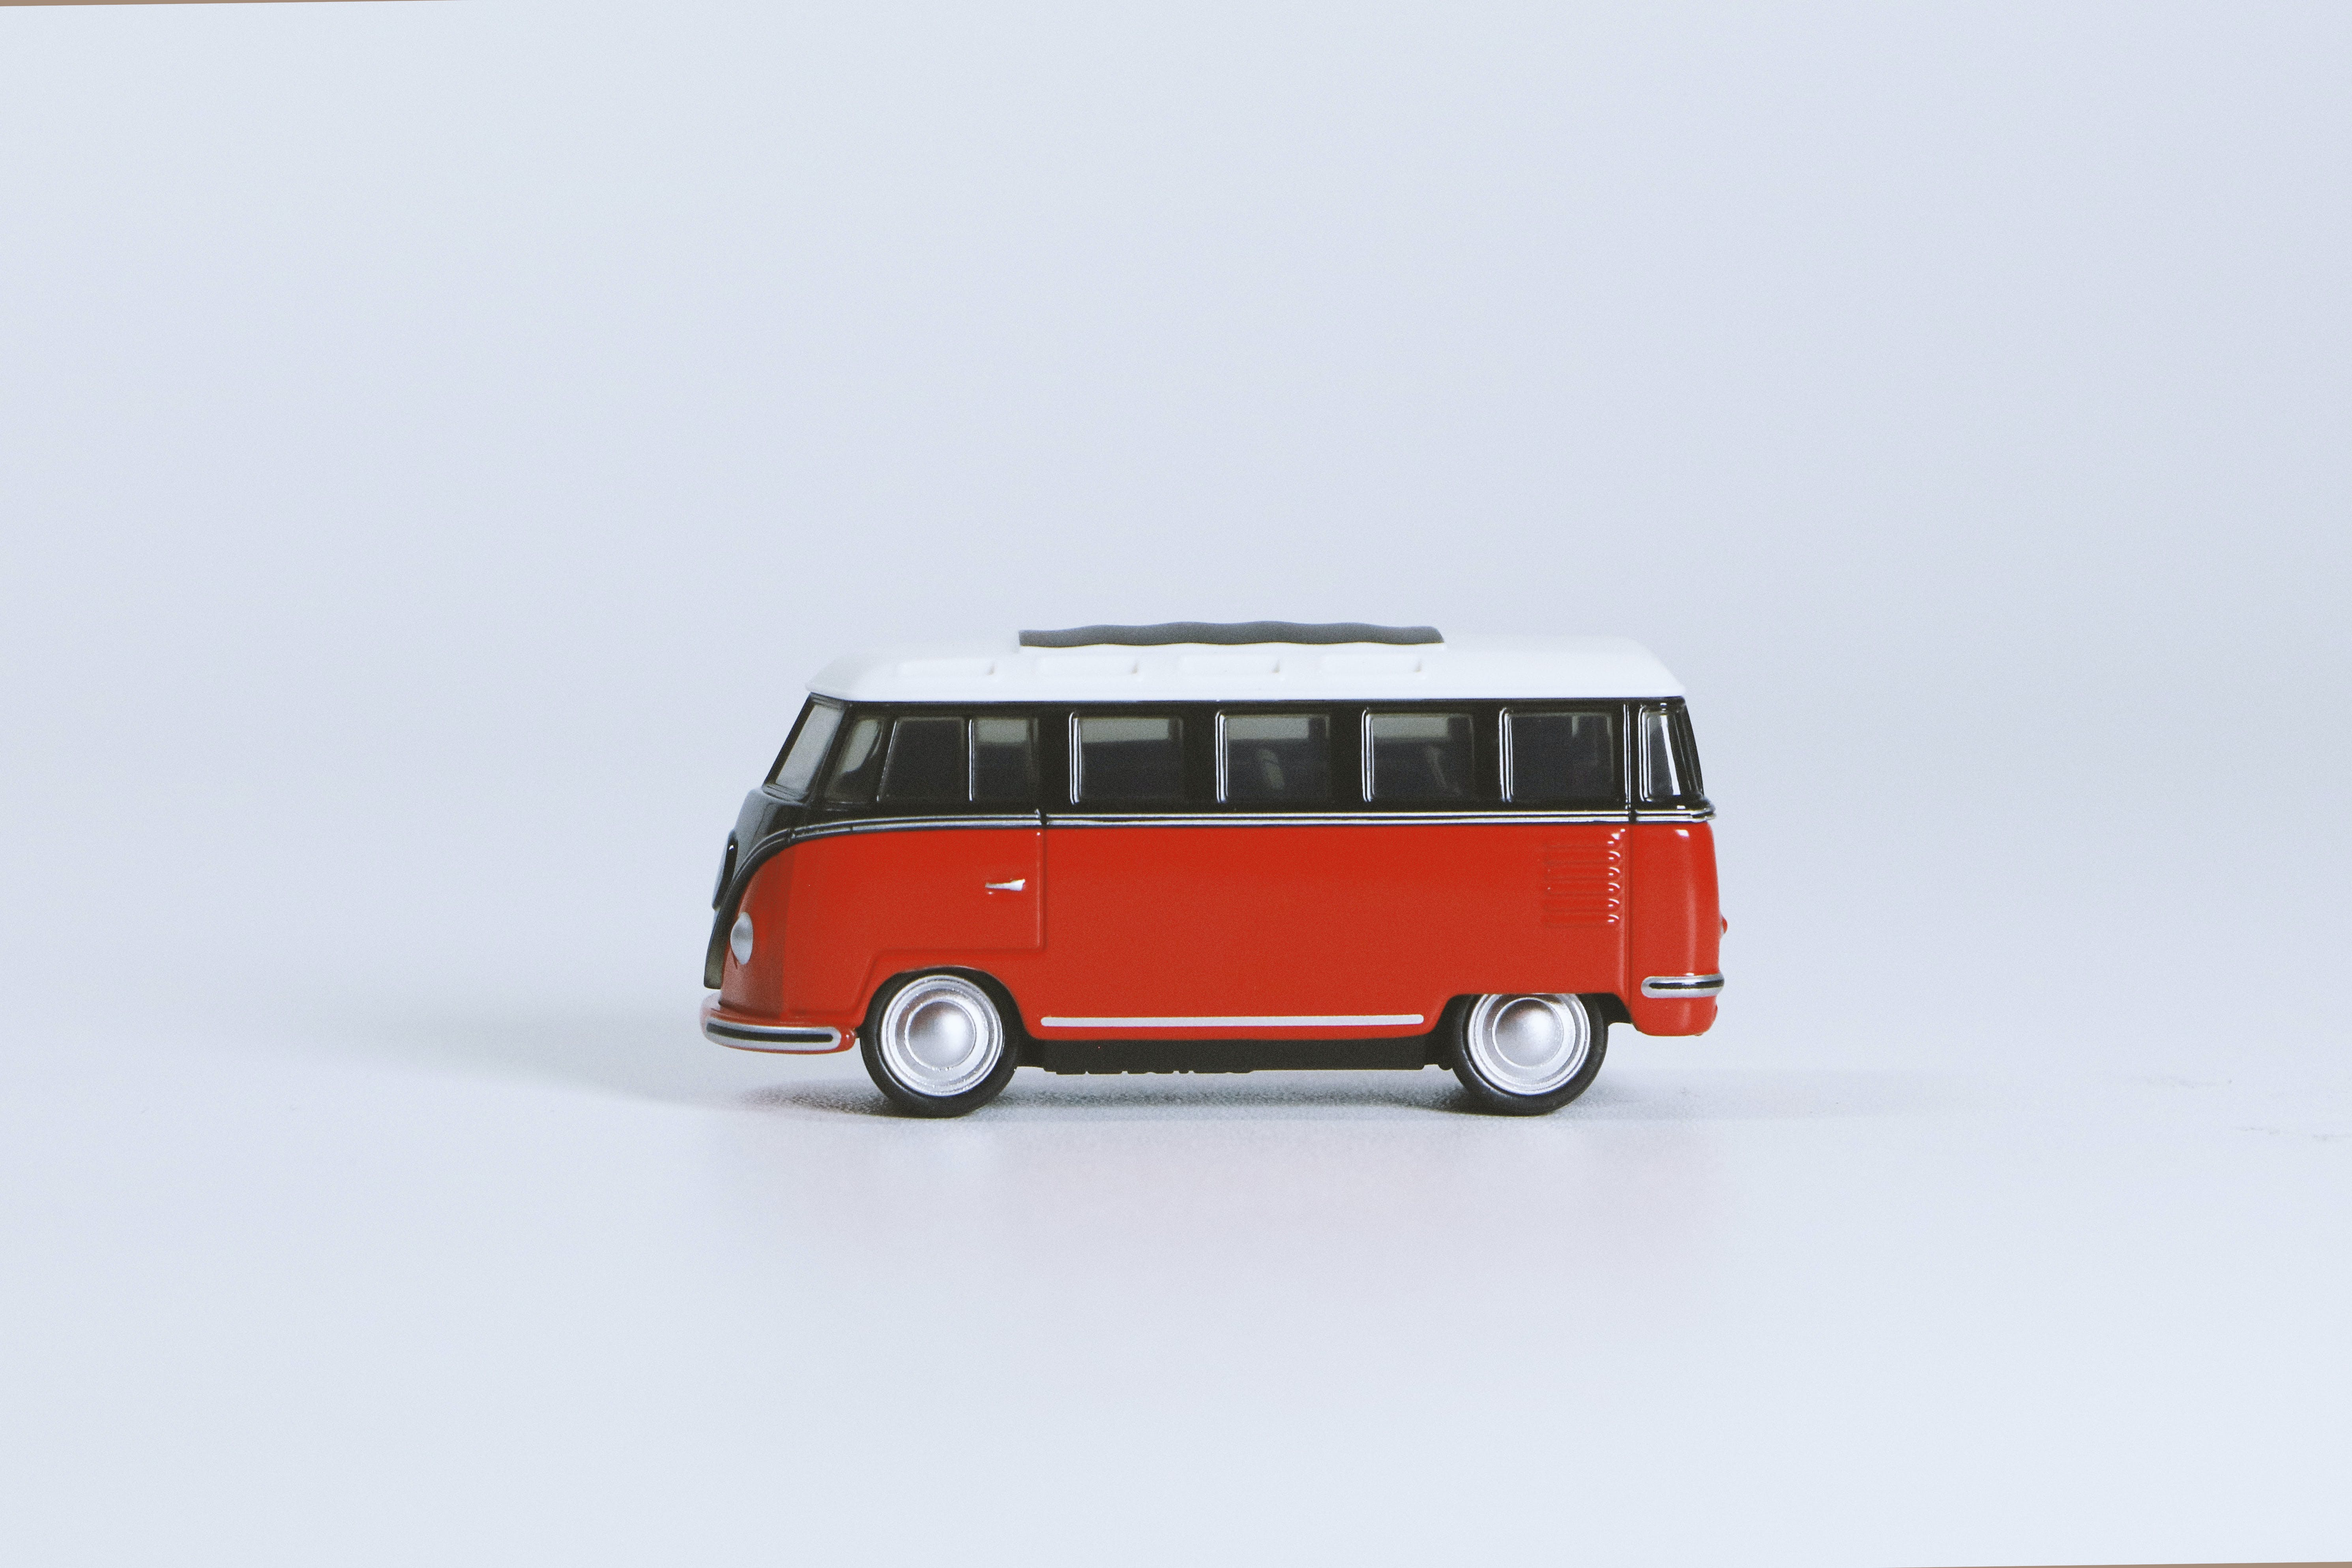 Red Volkswagen T1 Die-cast Toy on White Surface